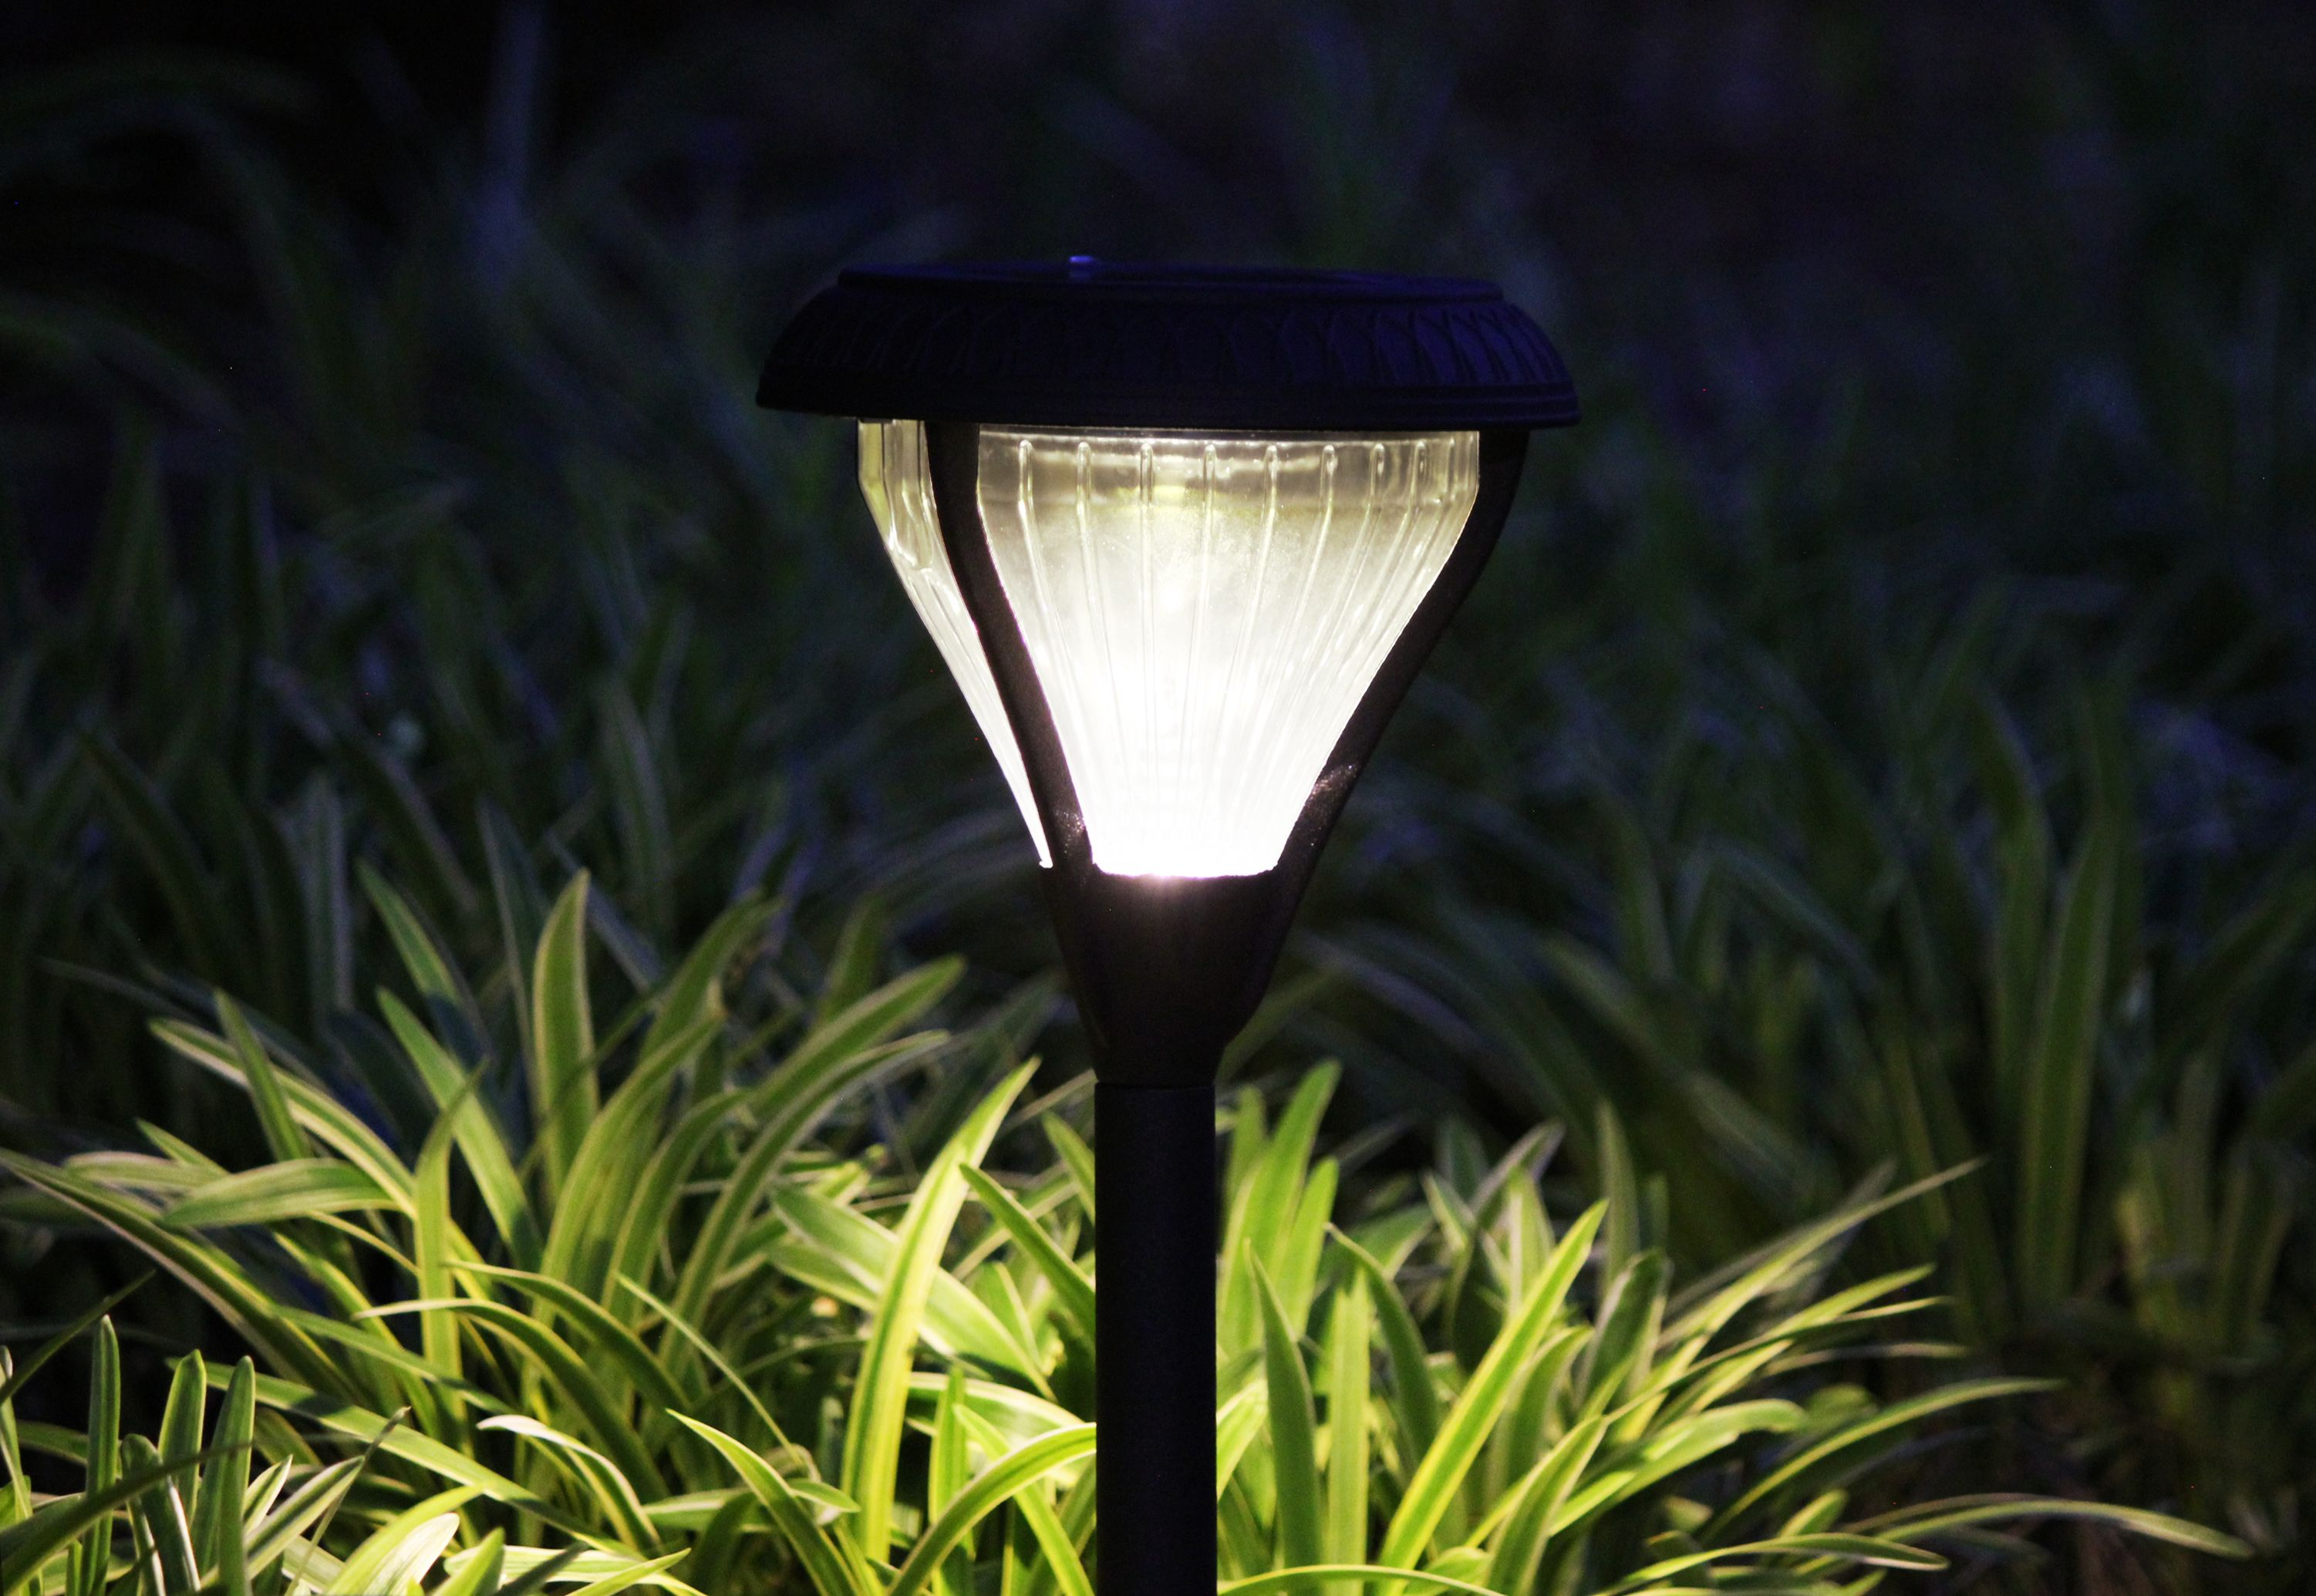 Premier solar garden light gs 139 set of 2 need to illuminate a pathway garden or driveway the premier solar garden light gs 139 is the perfect solar light solution arubaitofo Gallery